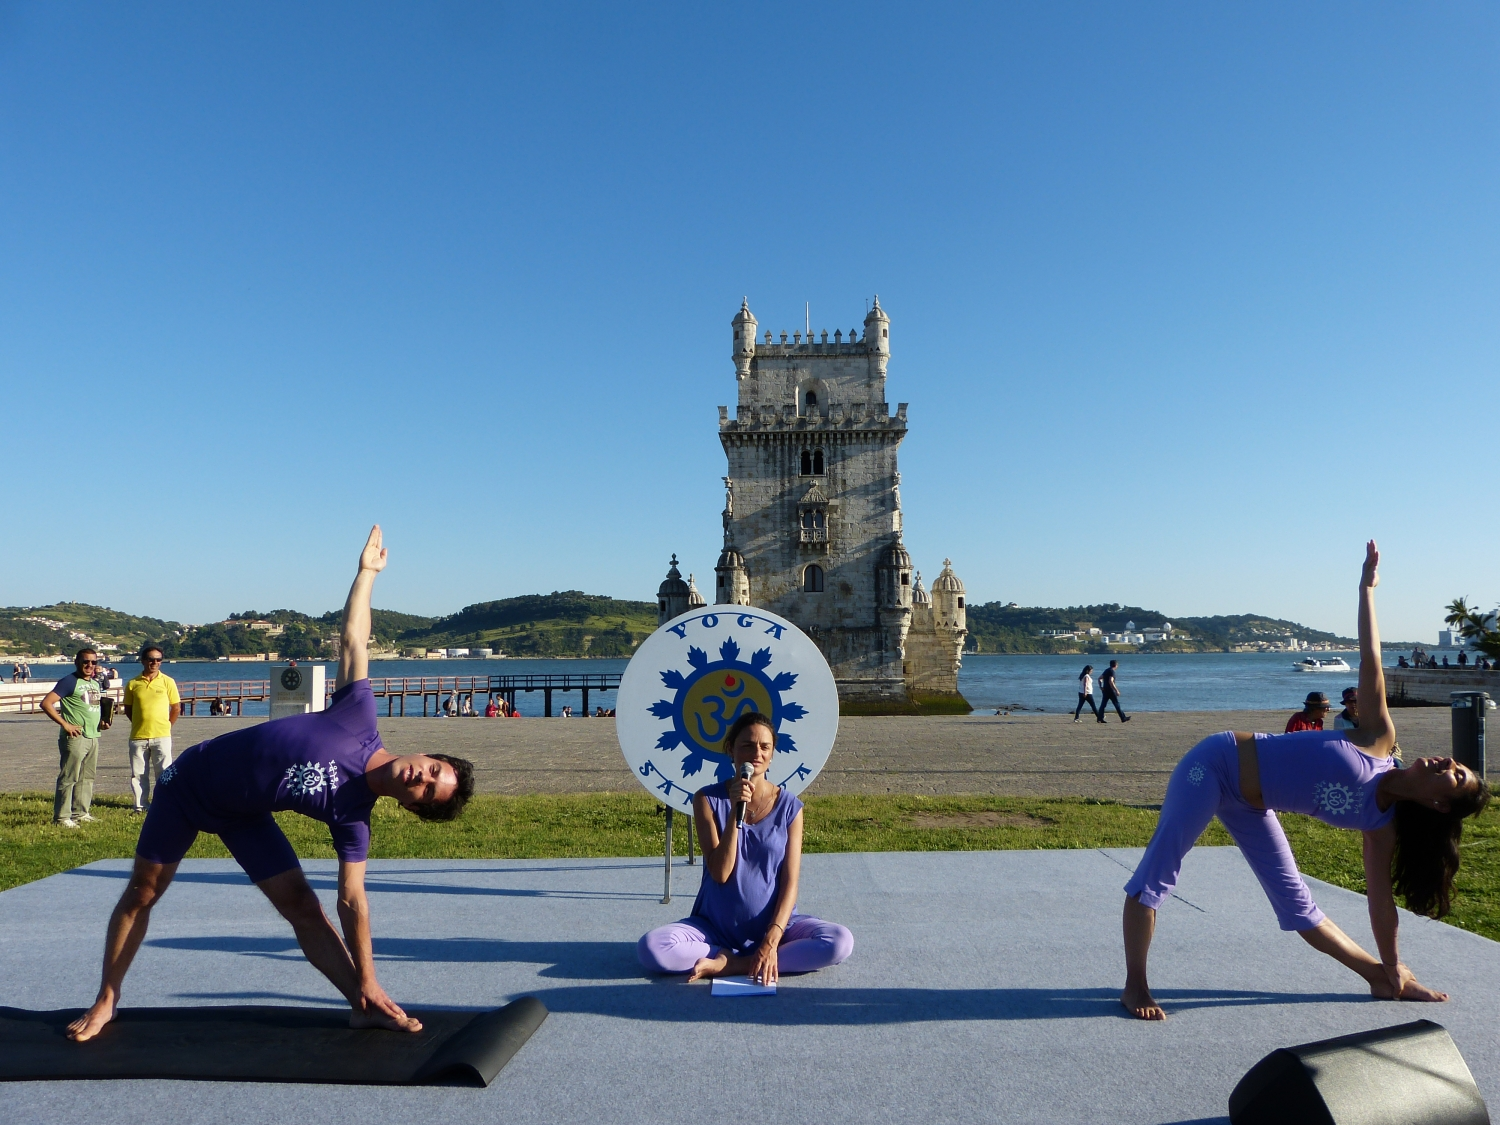 International Day of Yoga - IDY - 2016, Junho, 21 - Belém, Portugal